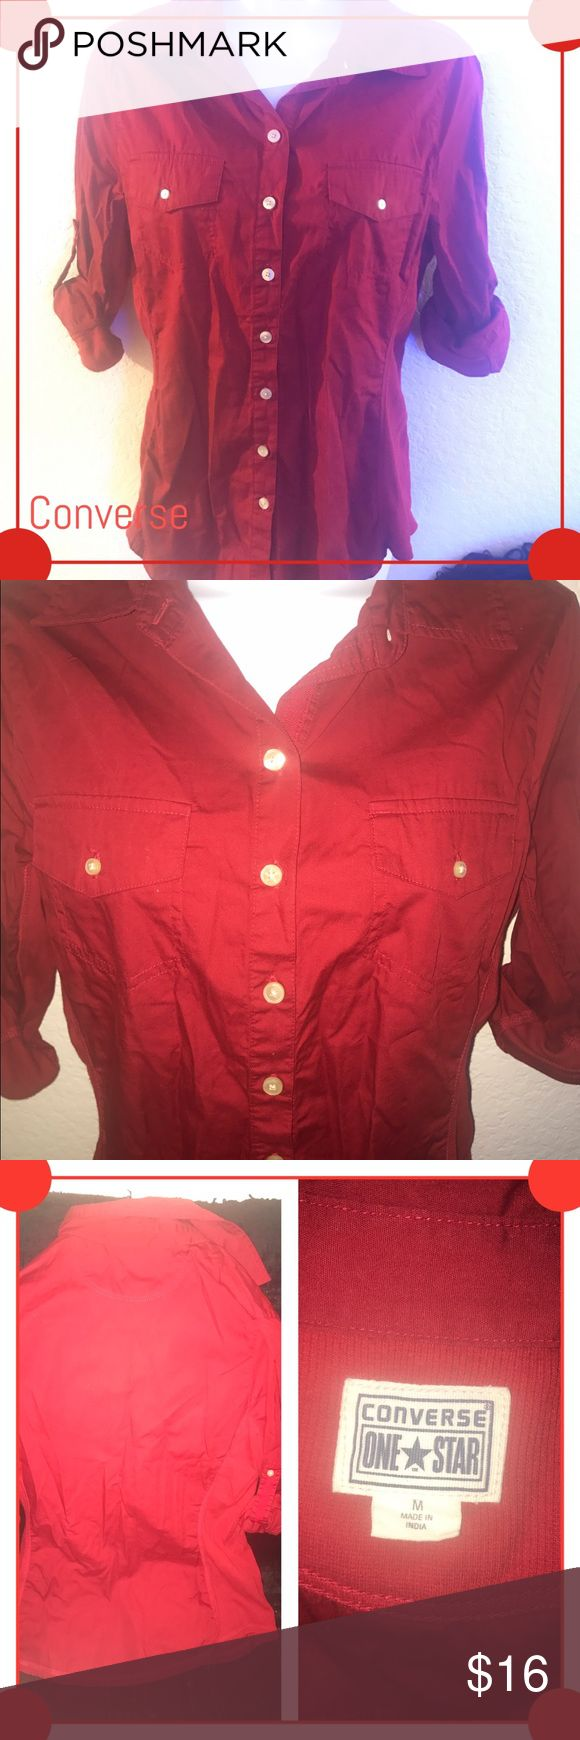 Converse button up women's blouse Red Converse women's button down. Stretchy cotton on side is slimming and makes the shirt very comfortable. Size medium. Converse Tops Button Down Shirts